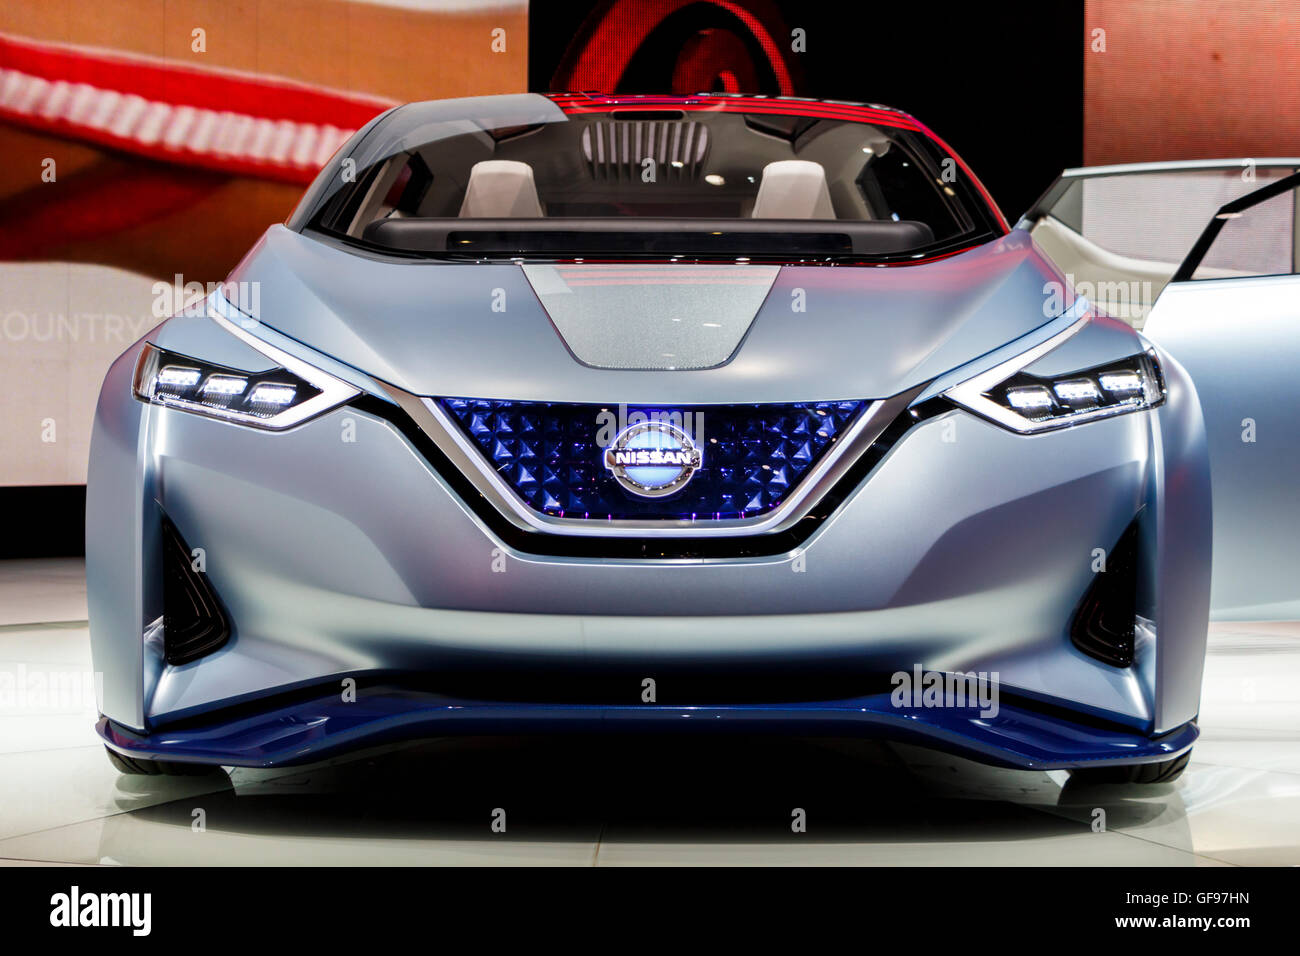 Nissan IDS Concept Car. Taken at 86th International Auto Show, Geneva - Stock Image